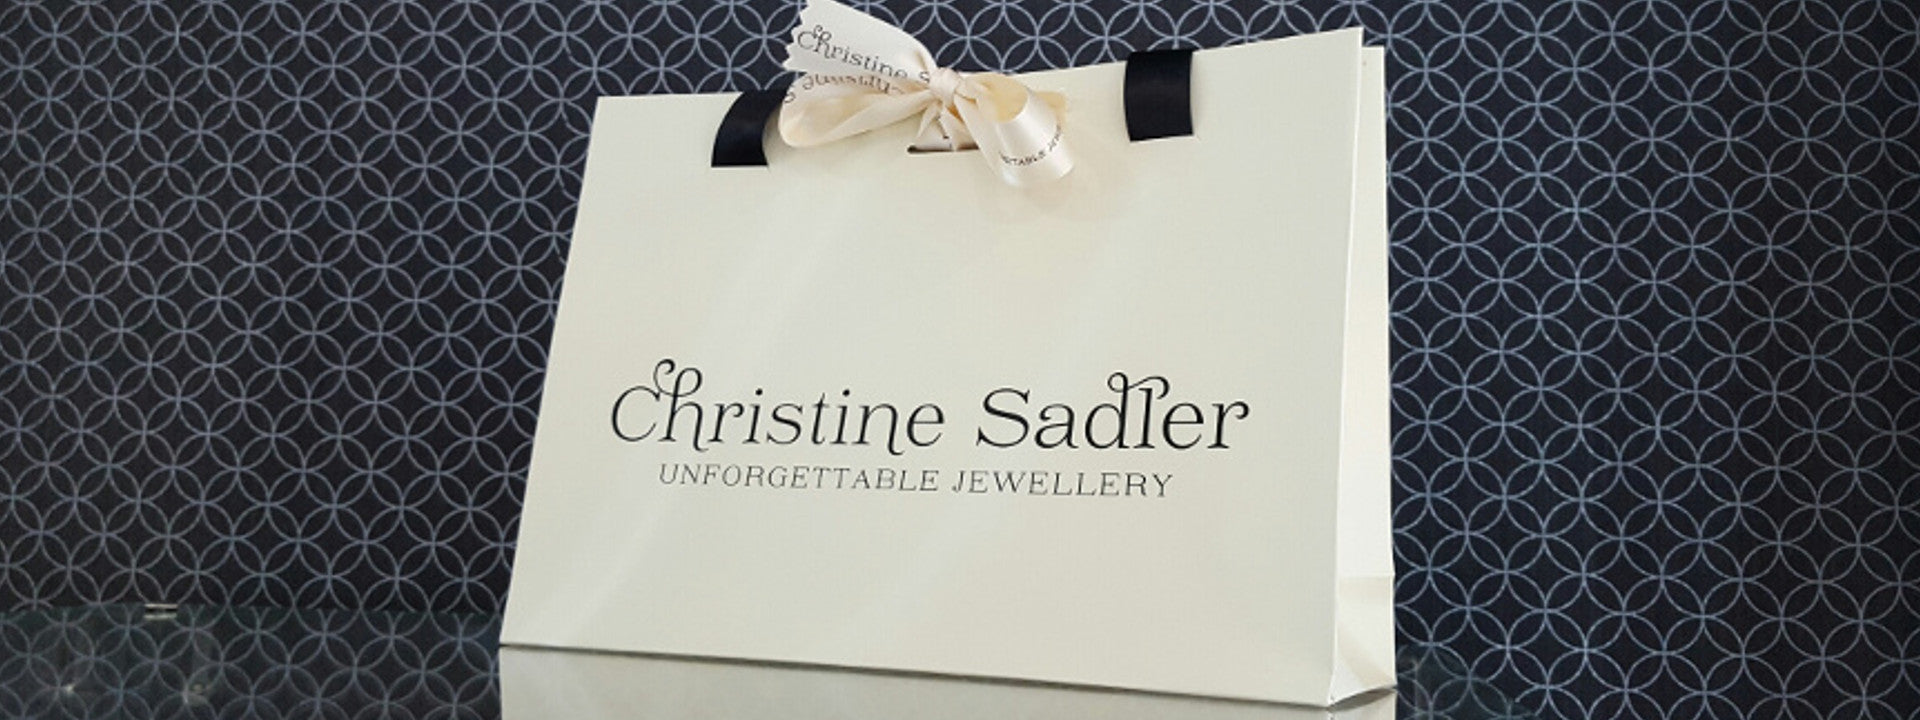 9d3a09f0a00 Explore unforgettable jewellery designs by Christine Sadler. Each item  comes in a beautiful wooden gift box